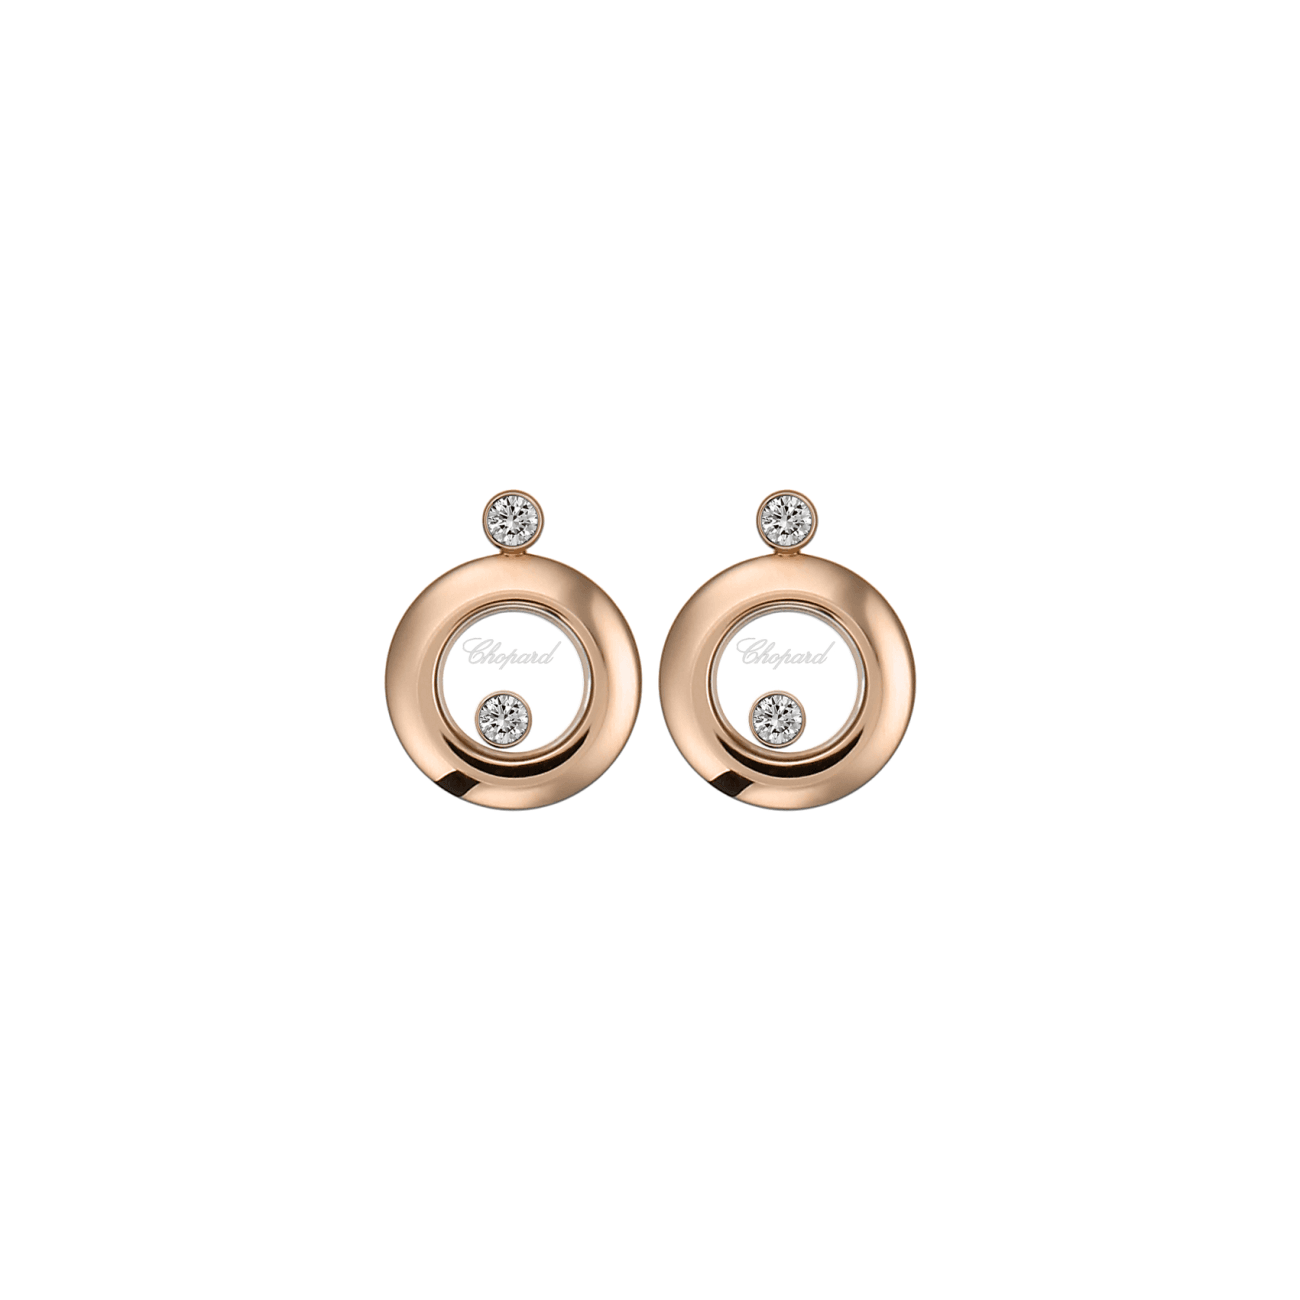 Chopard Jewelry - HAPPY DIAMONDS RD. 1 FLOATING DIAM Earrings | Manfredi Jewels